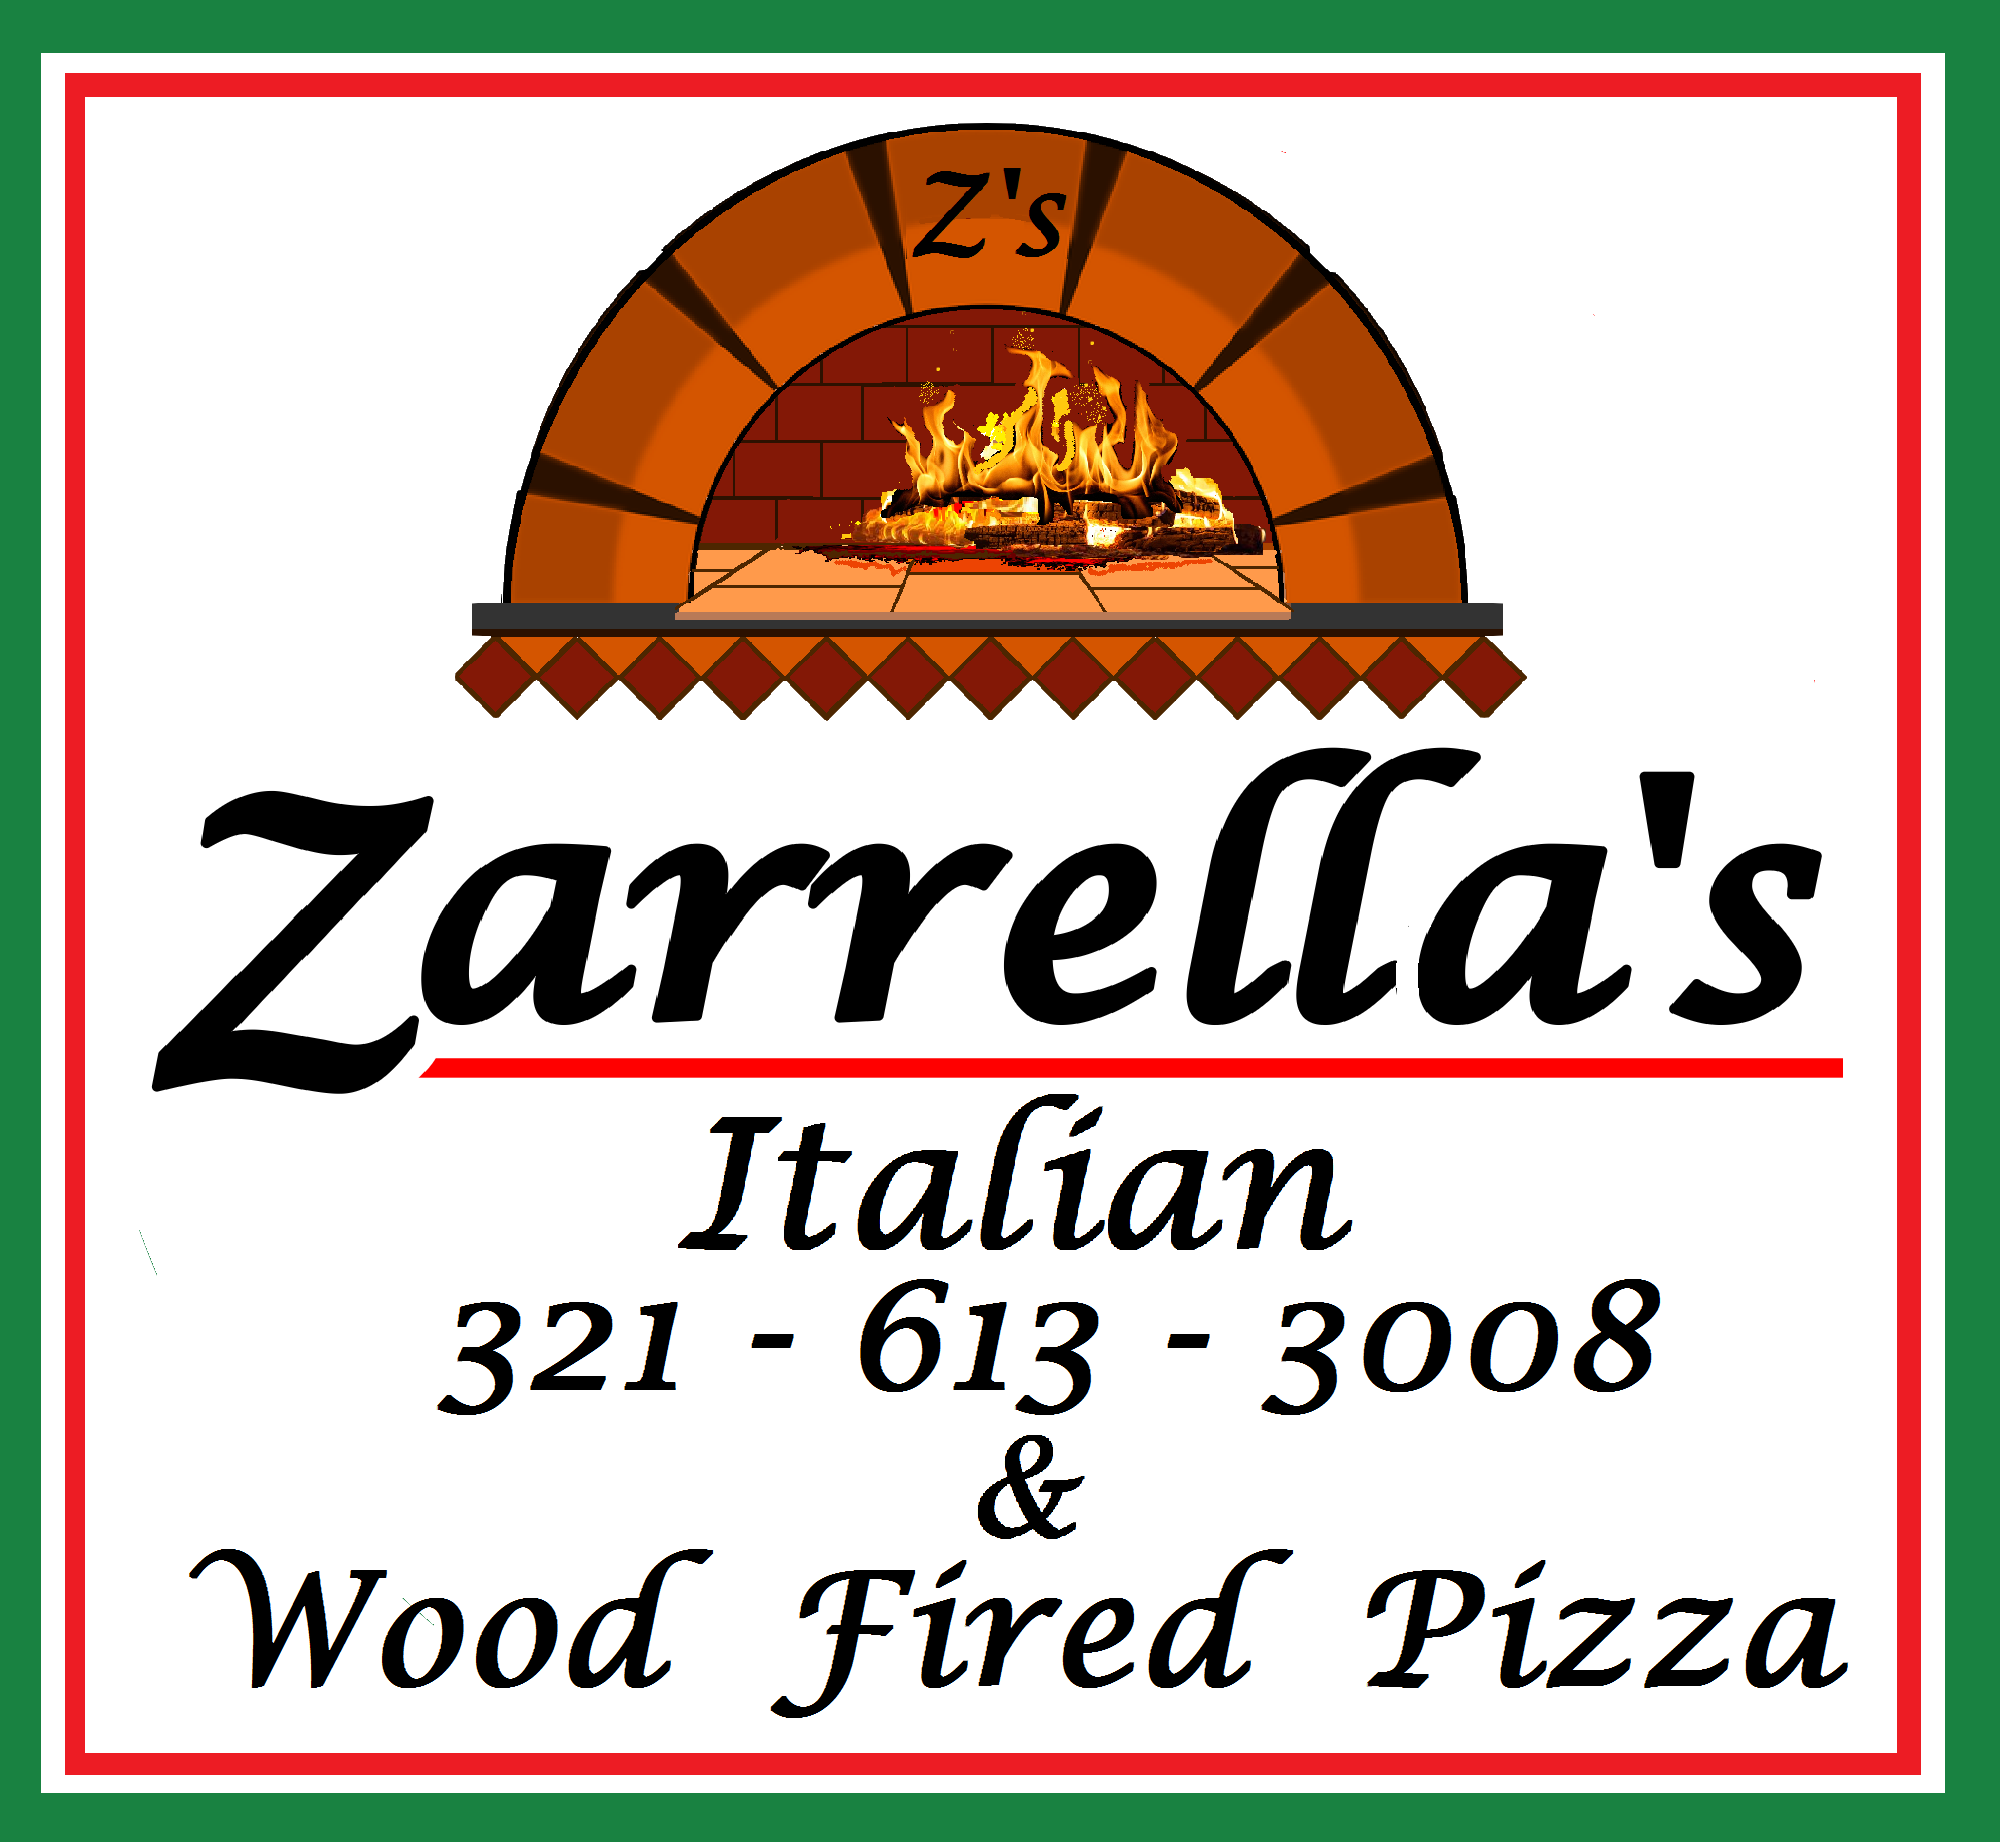 Zarrella's Itallian & Wood Fired Pizza